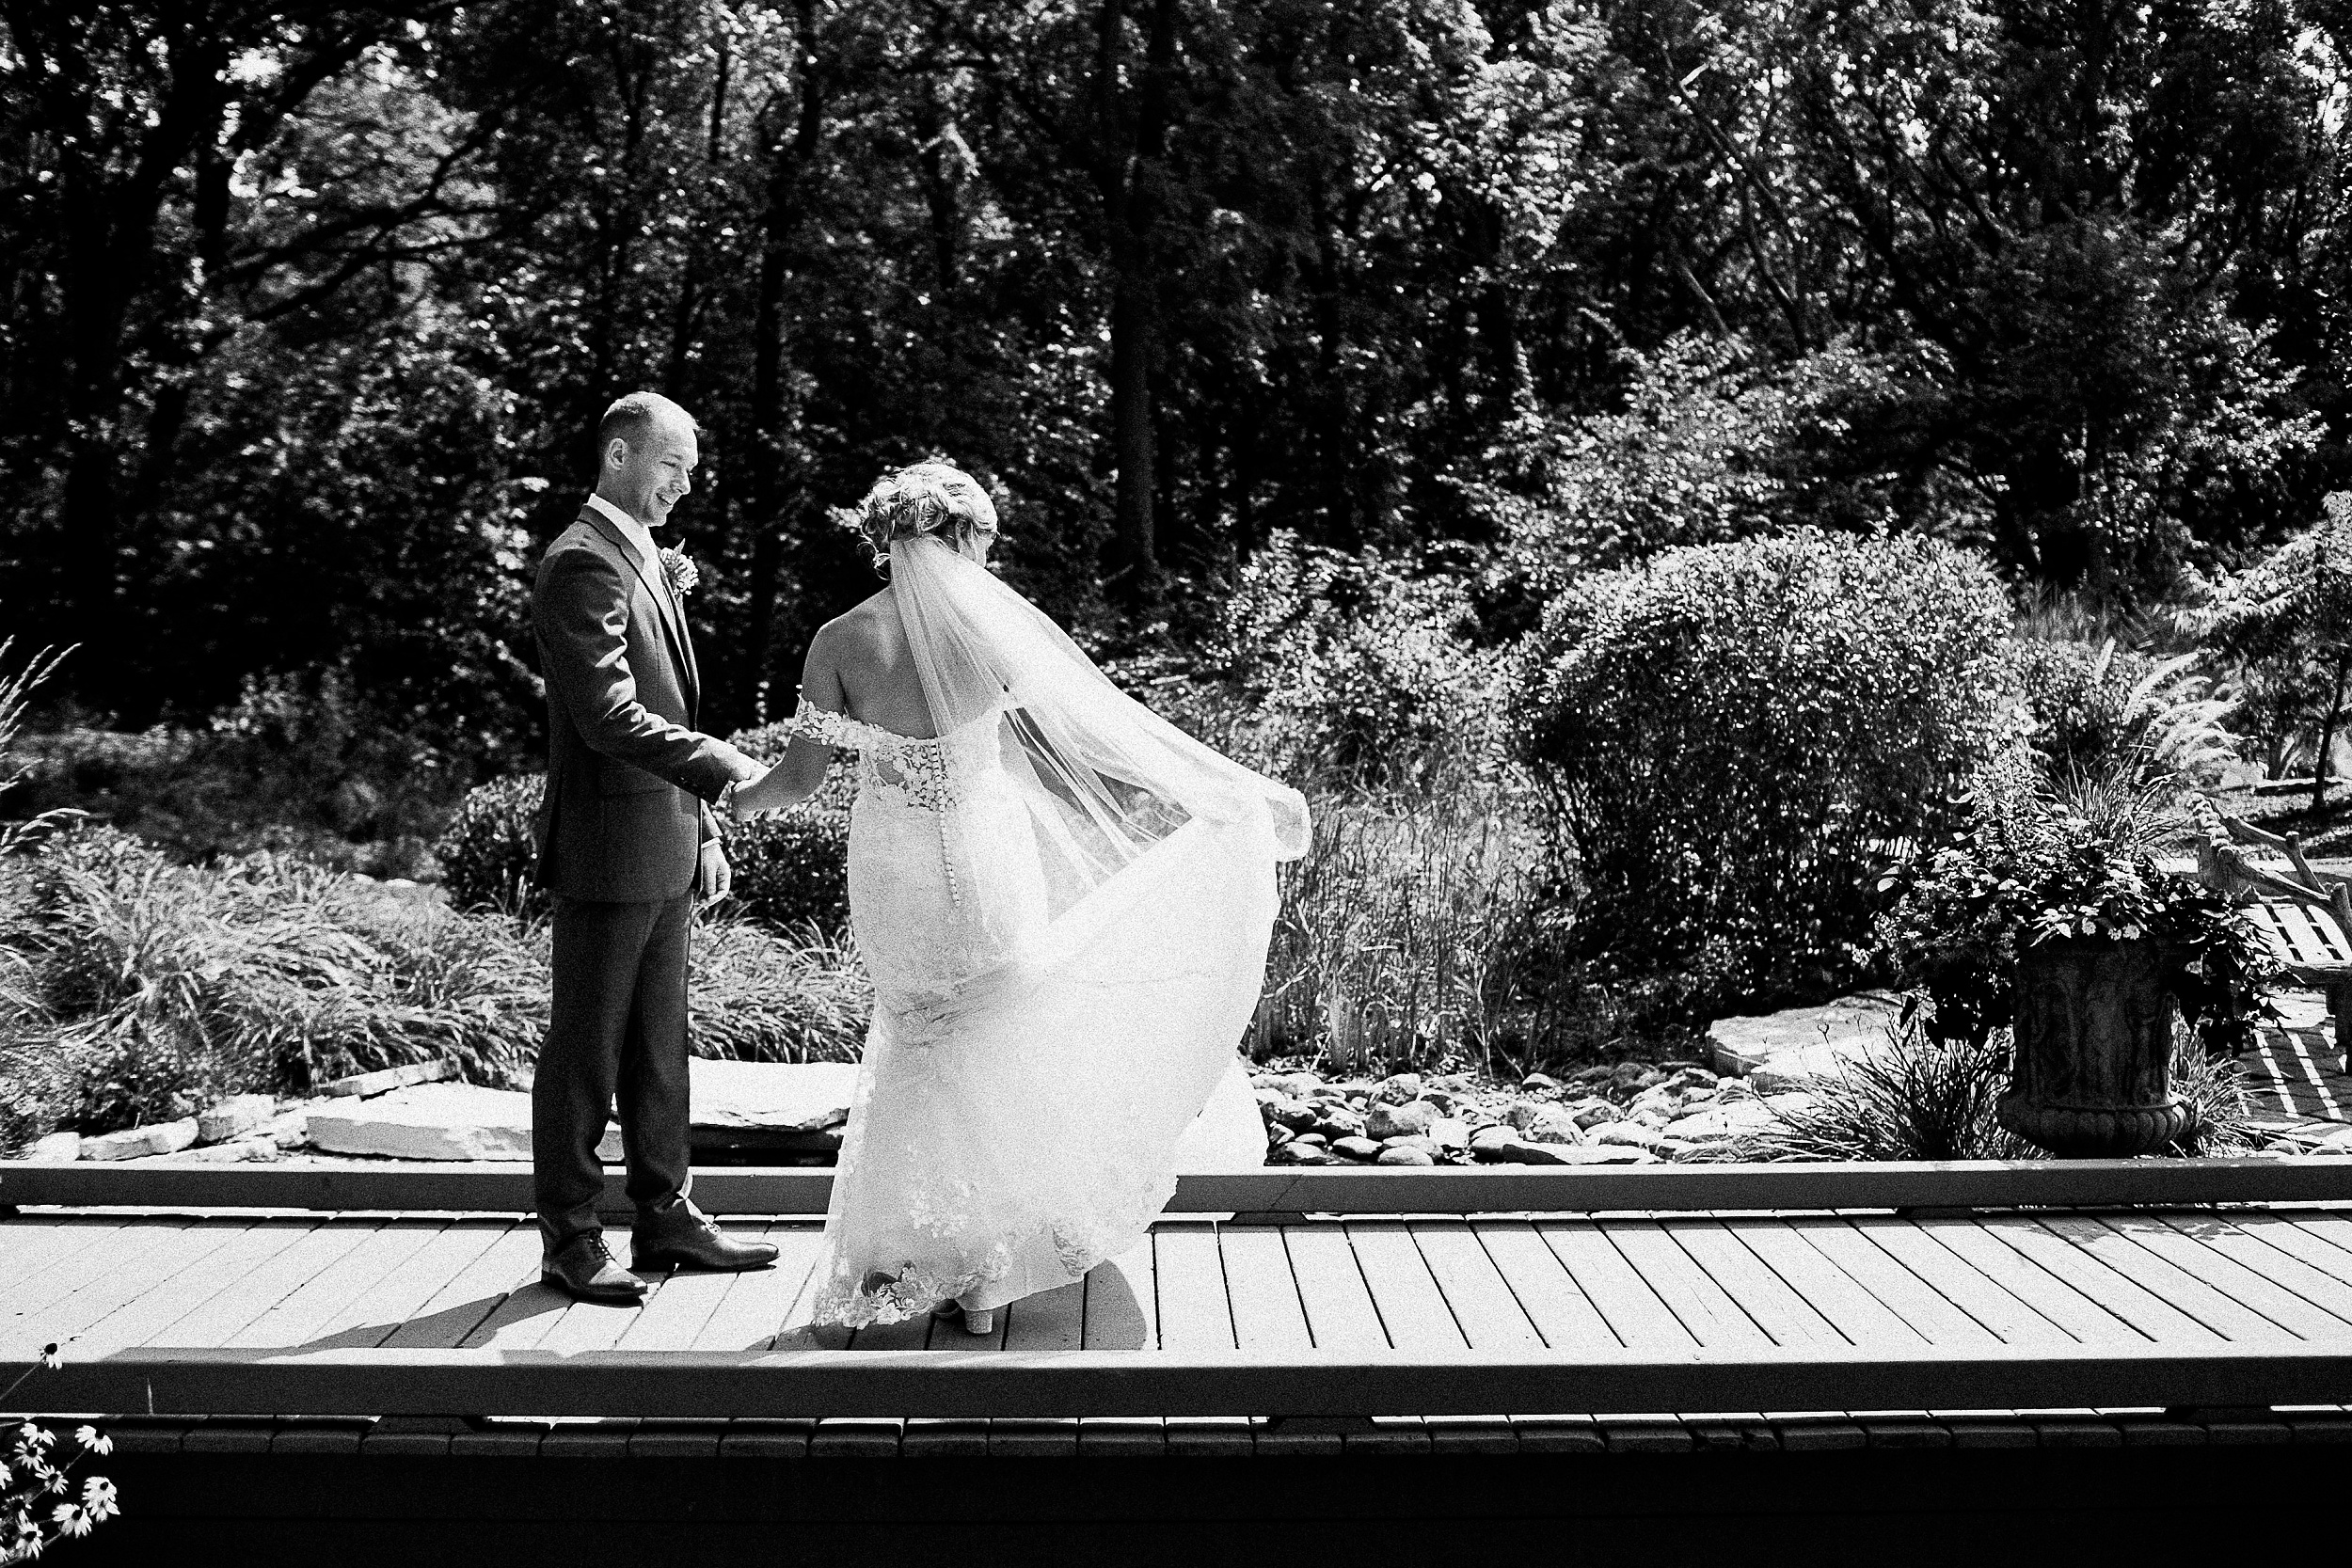 monte-bello-estates-lemont-il-wedding-photography_051.jpg